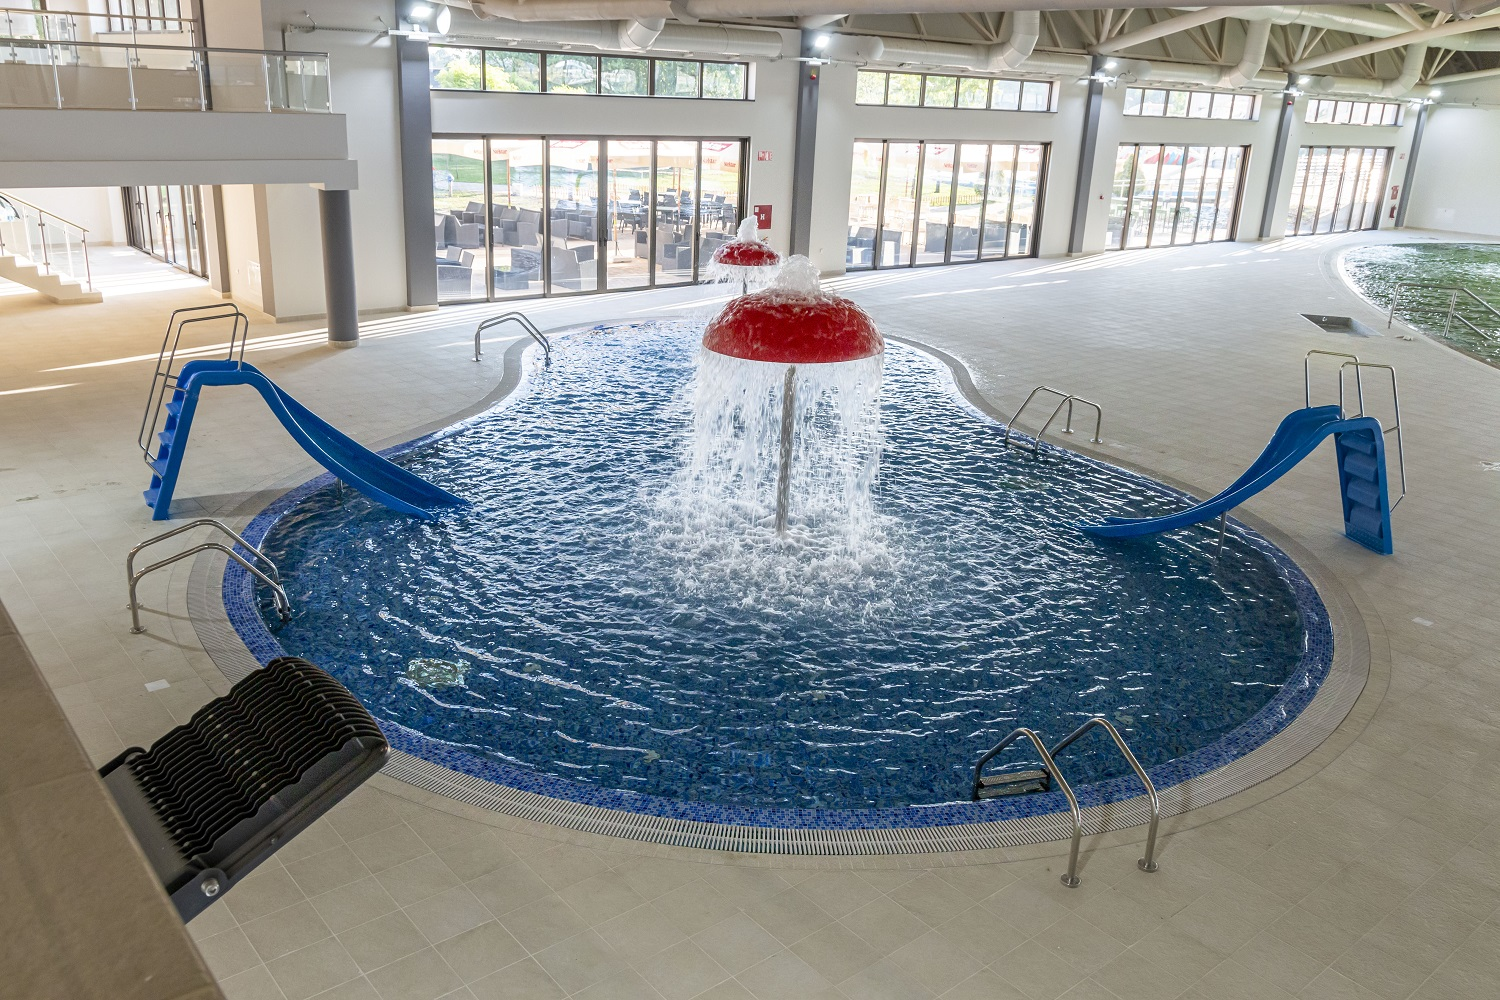 CHILDREN'S POOL WITH  FUNNY ATTRACTIONS